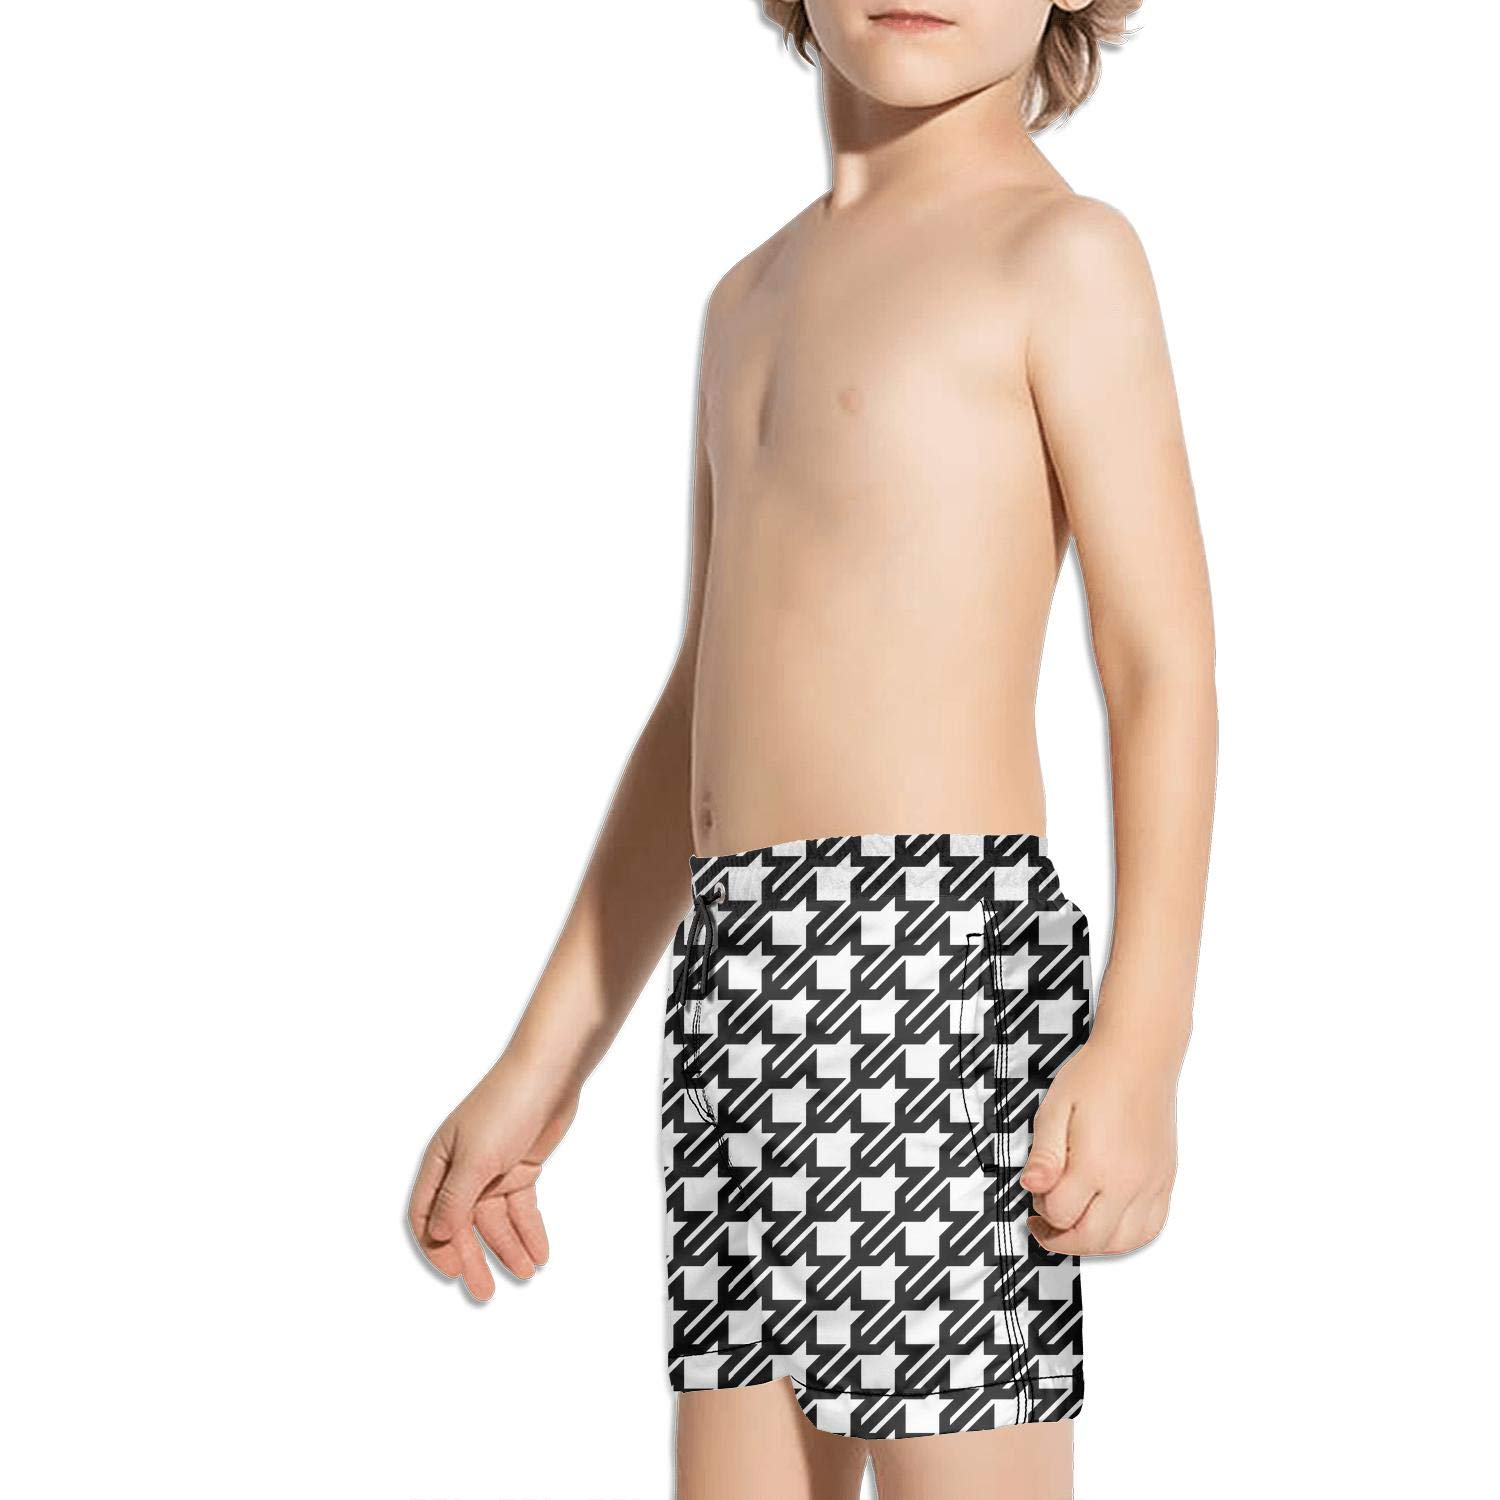 uejnnbc Tooth Figures Checkerboard Workout Fully Lined Solid Board Swimming Trunks Shorts